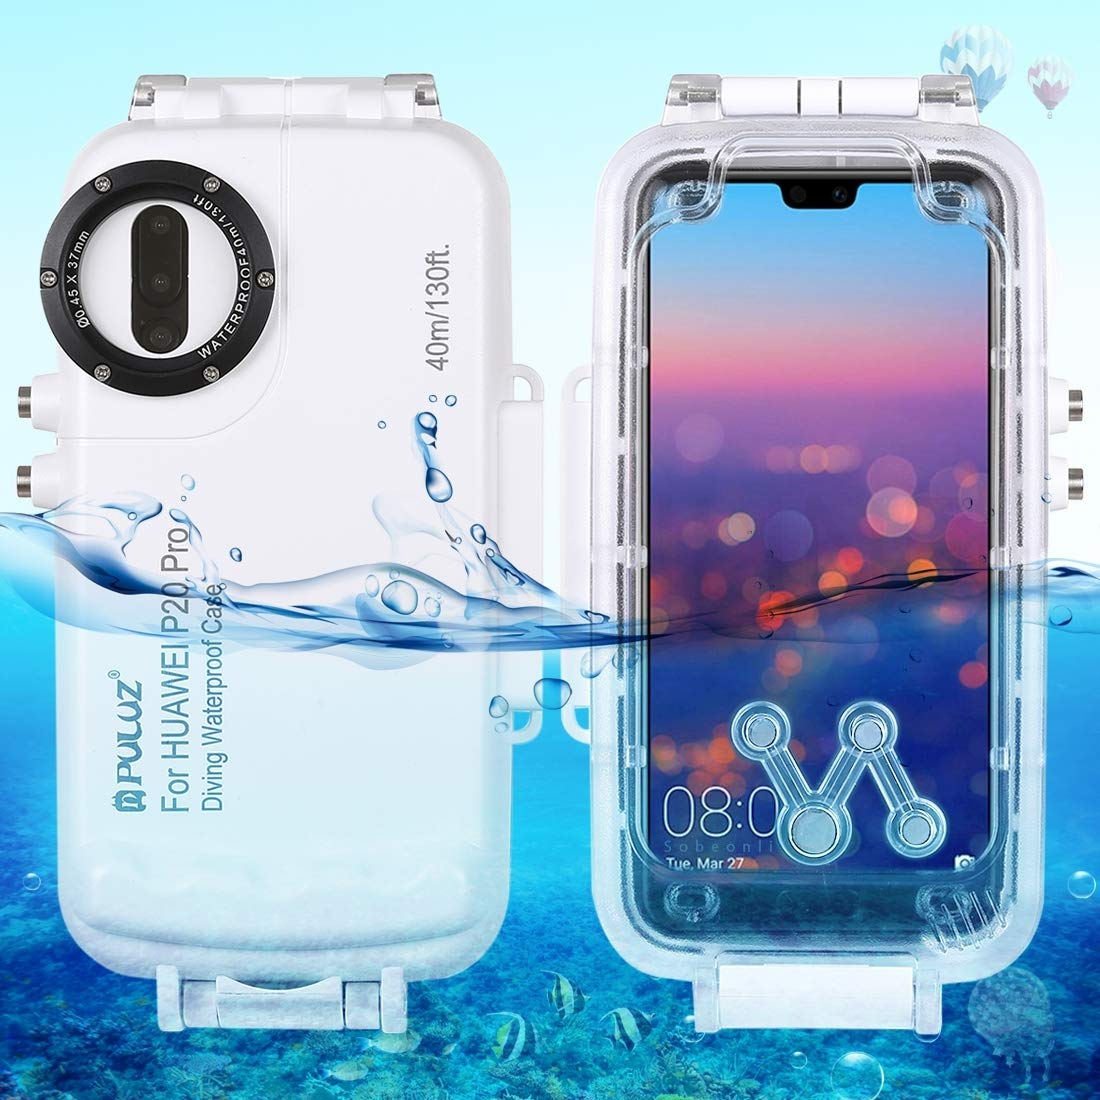 Lstwgc Huawei P20 Pro Dry Bag Case, PULUZ 40m/130ft Waterproof Diving Housing Photo Video Taking Underwater Cover Case for Huawei P20 Pro (Color : White)